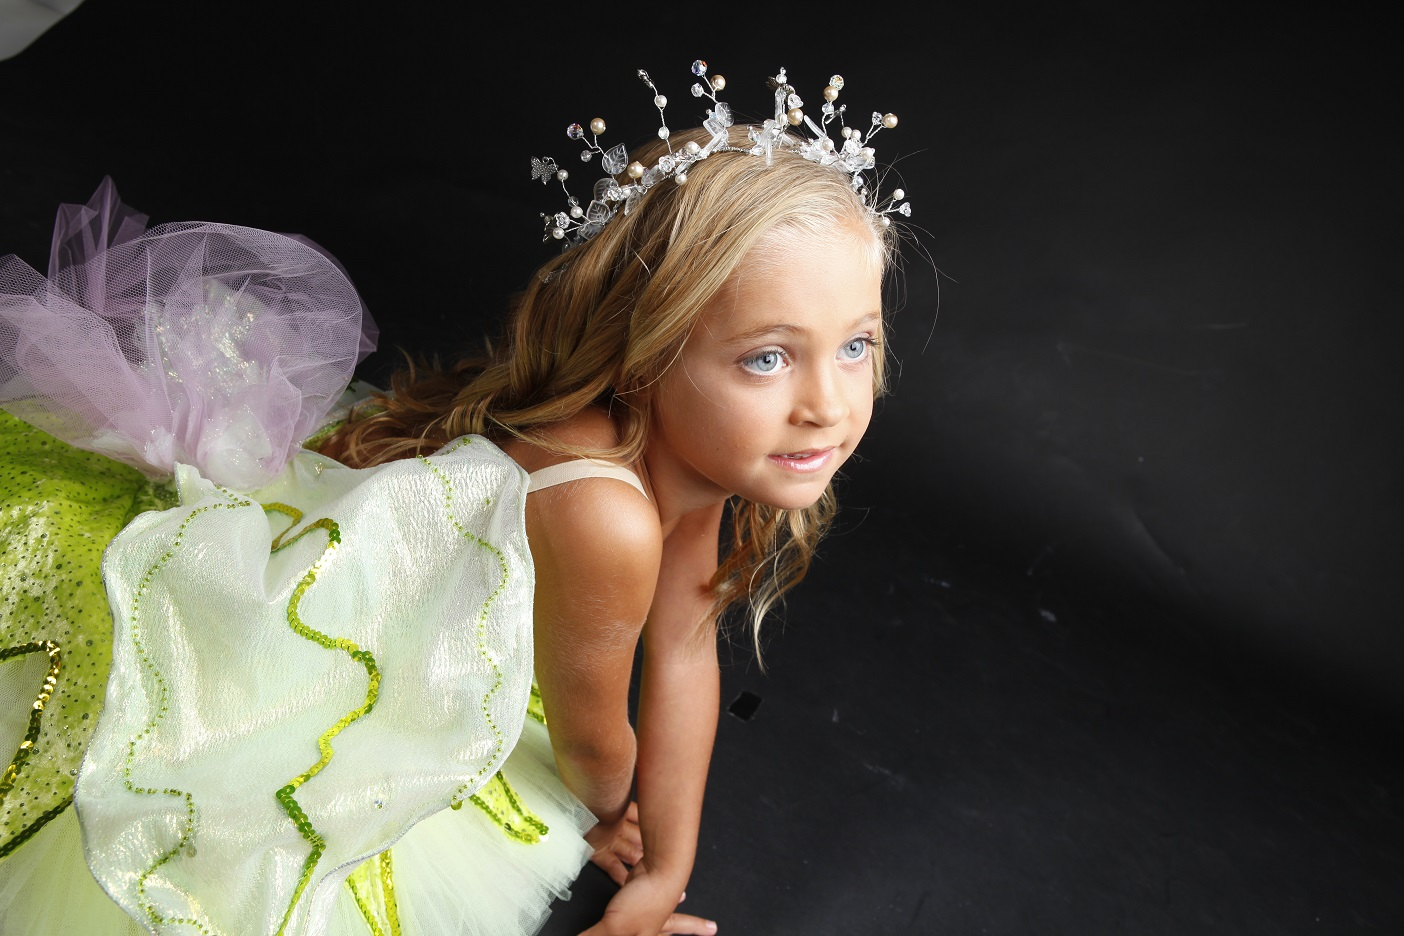 Tiaras 4 Fairies. Handmade Crowns for gorgeous Fairies & Princesses